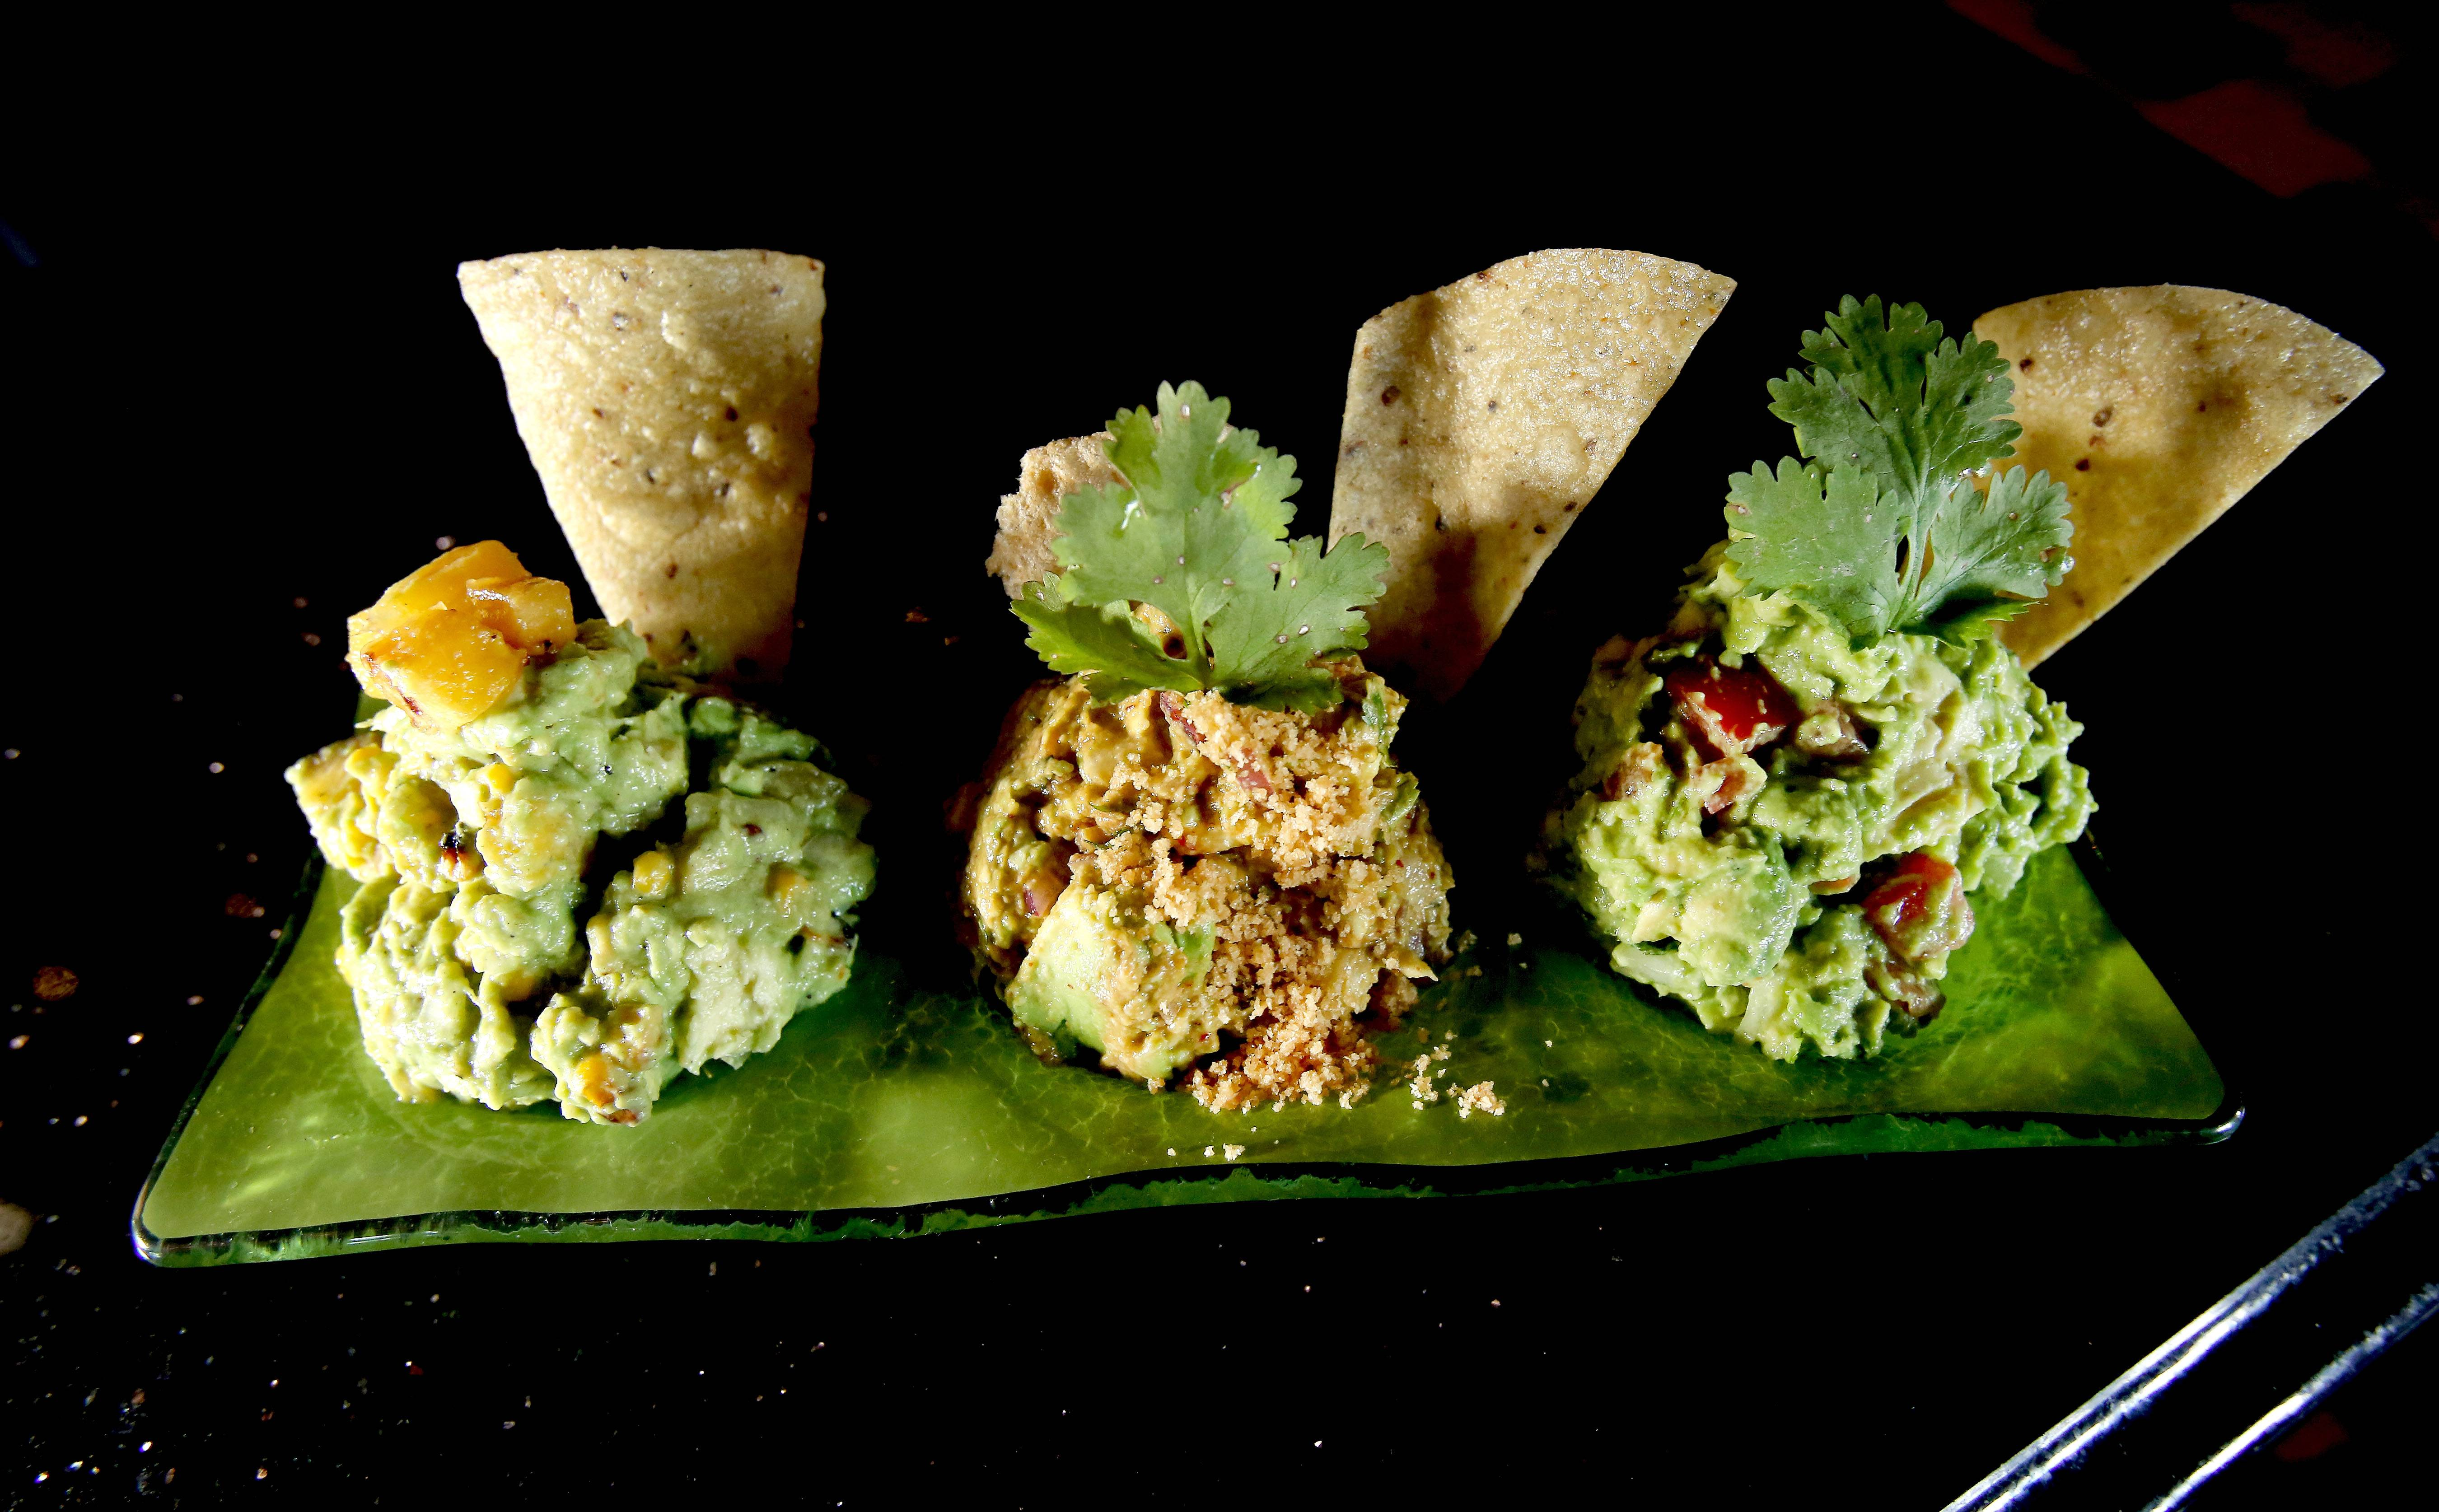 A trio of guacamole at Barbakoa restaurant in Downers Grove